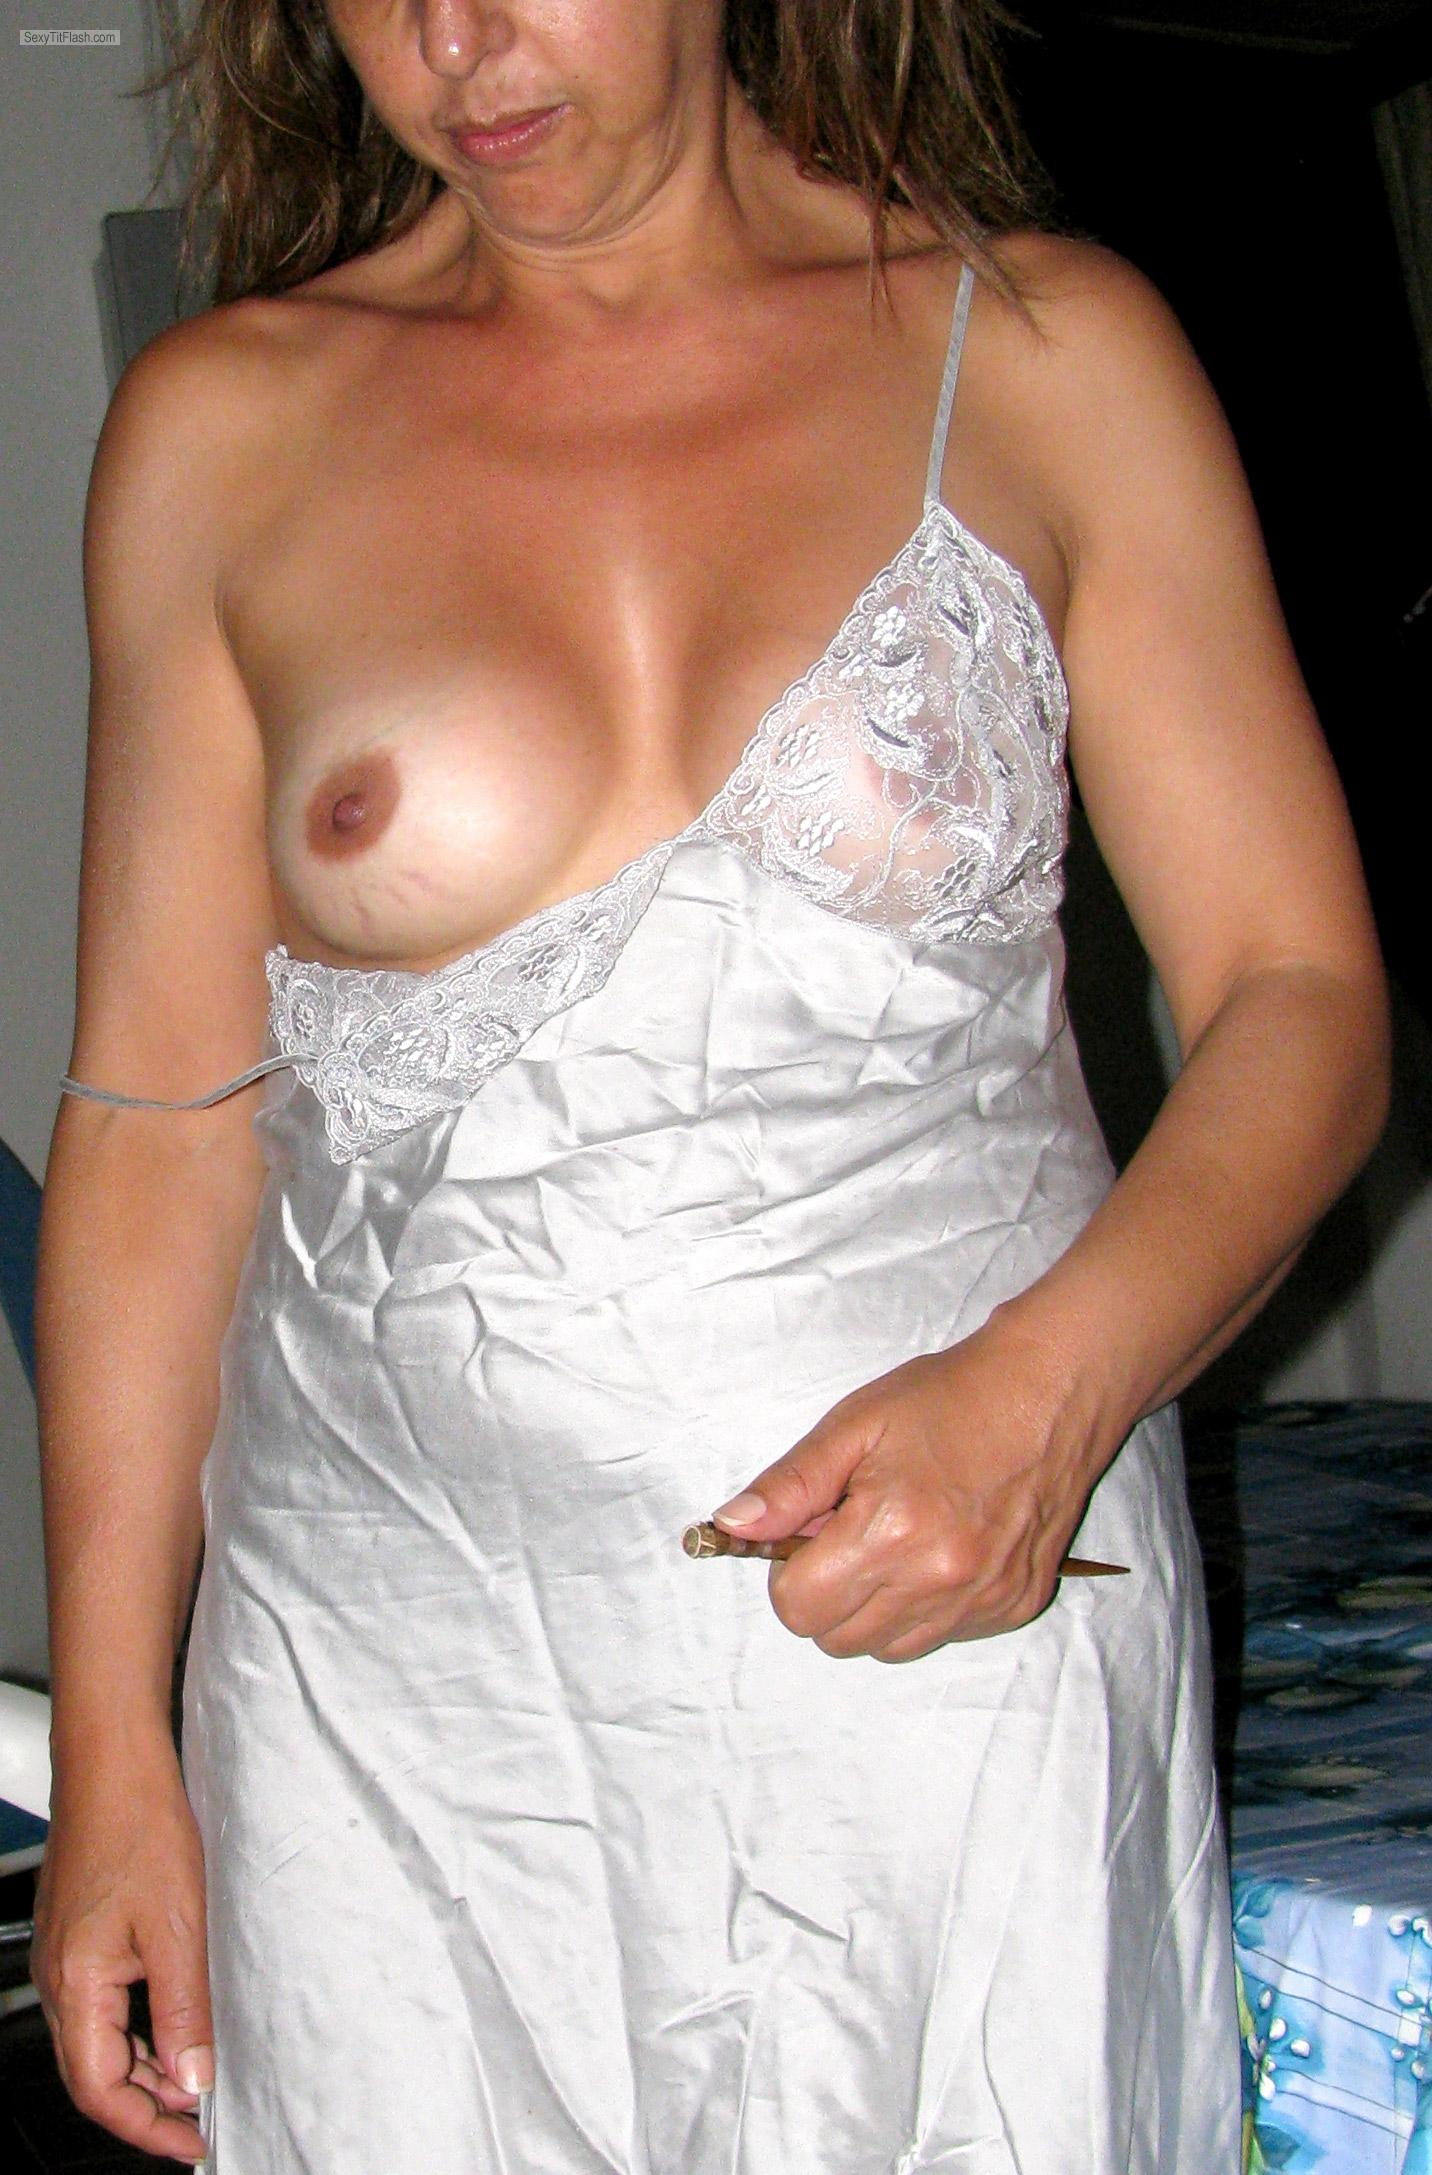 Small Tits Of My Wife MoglieNuda